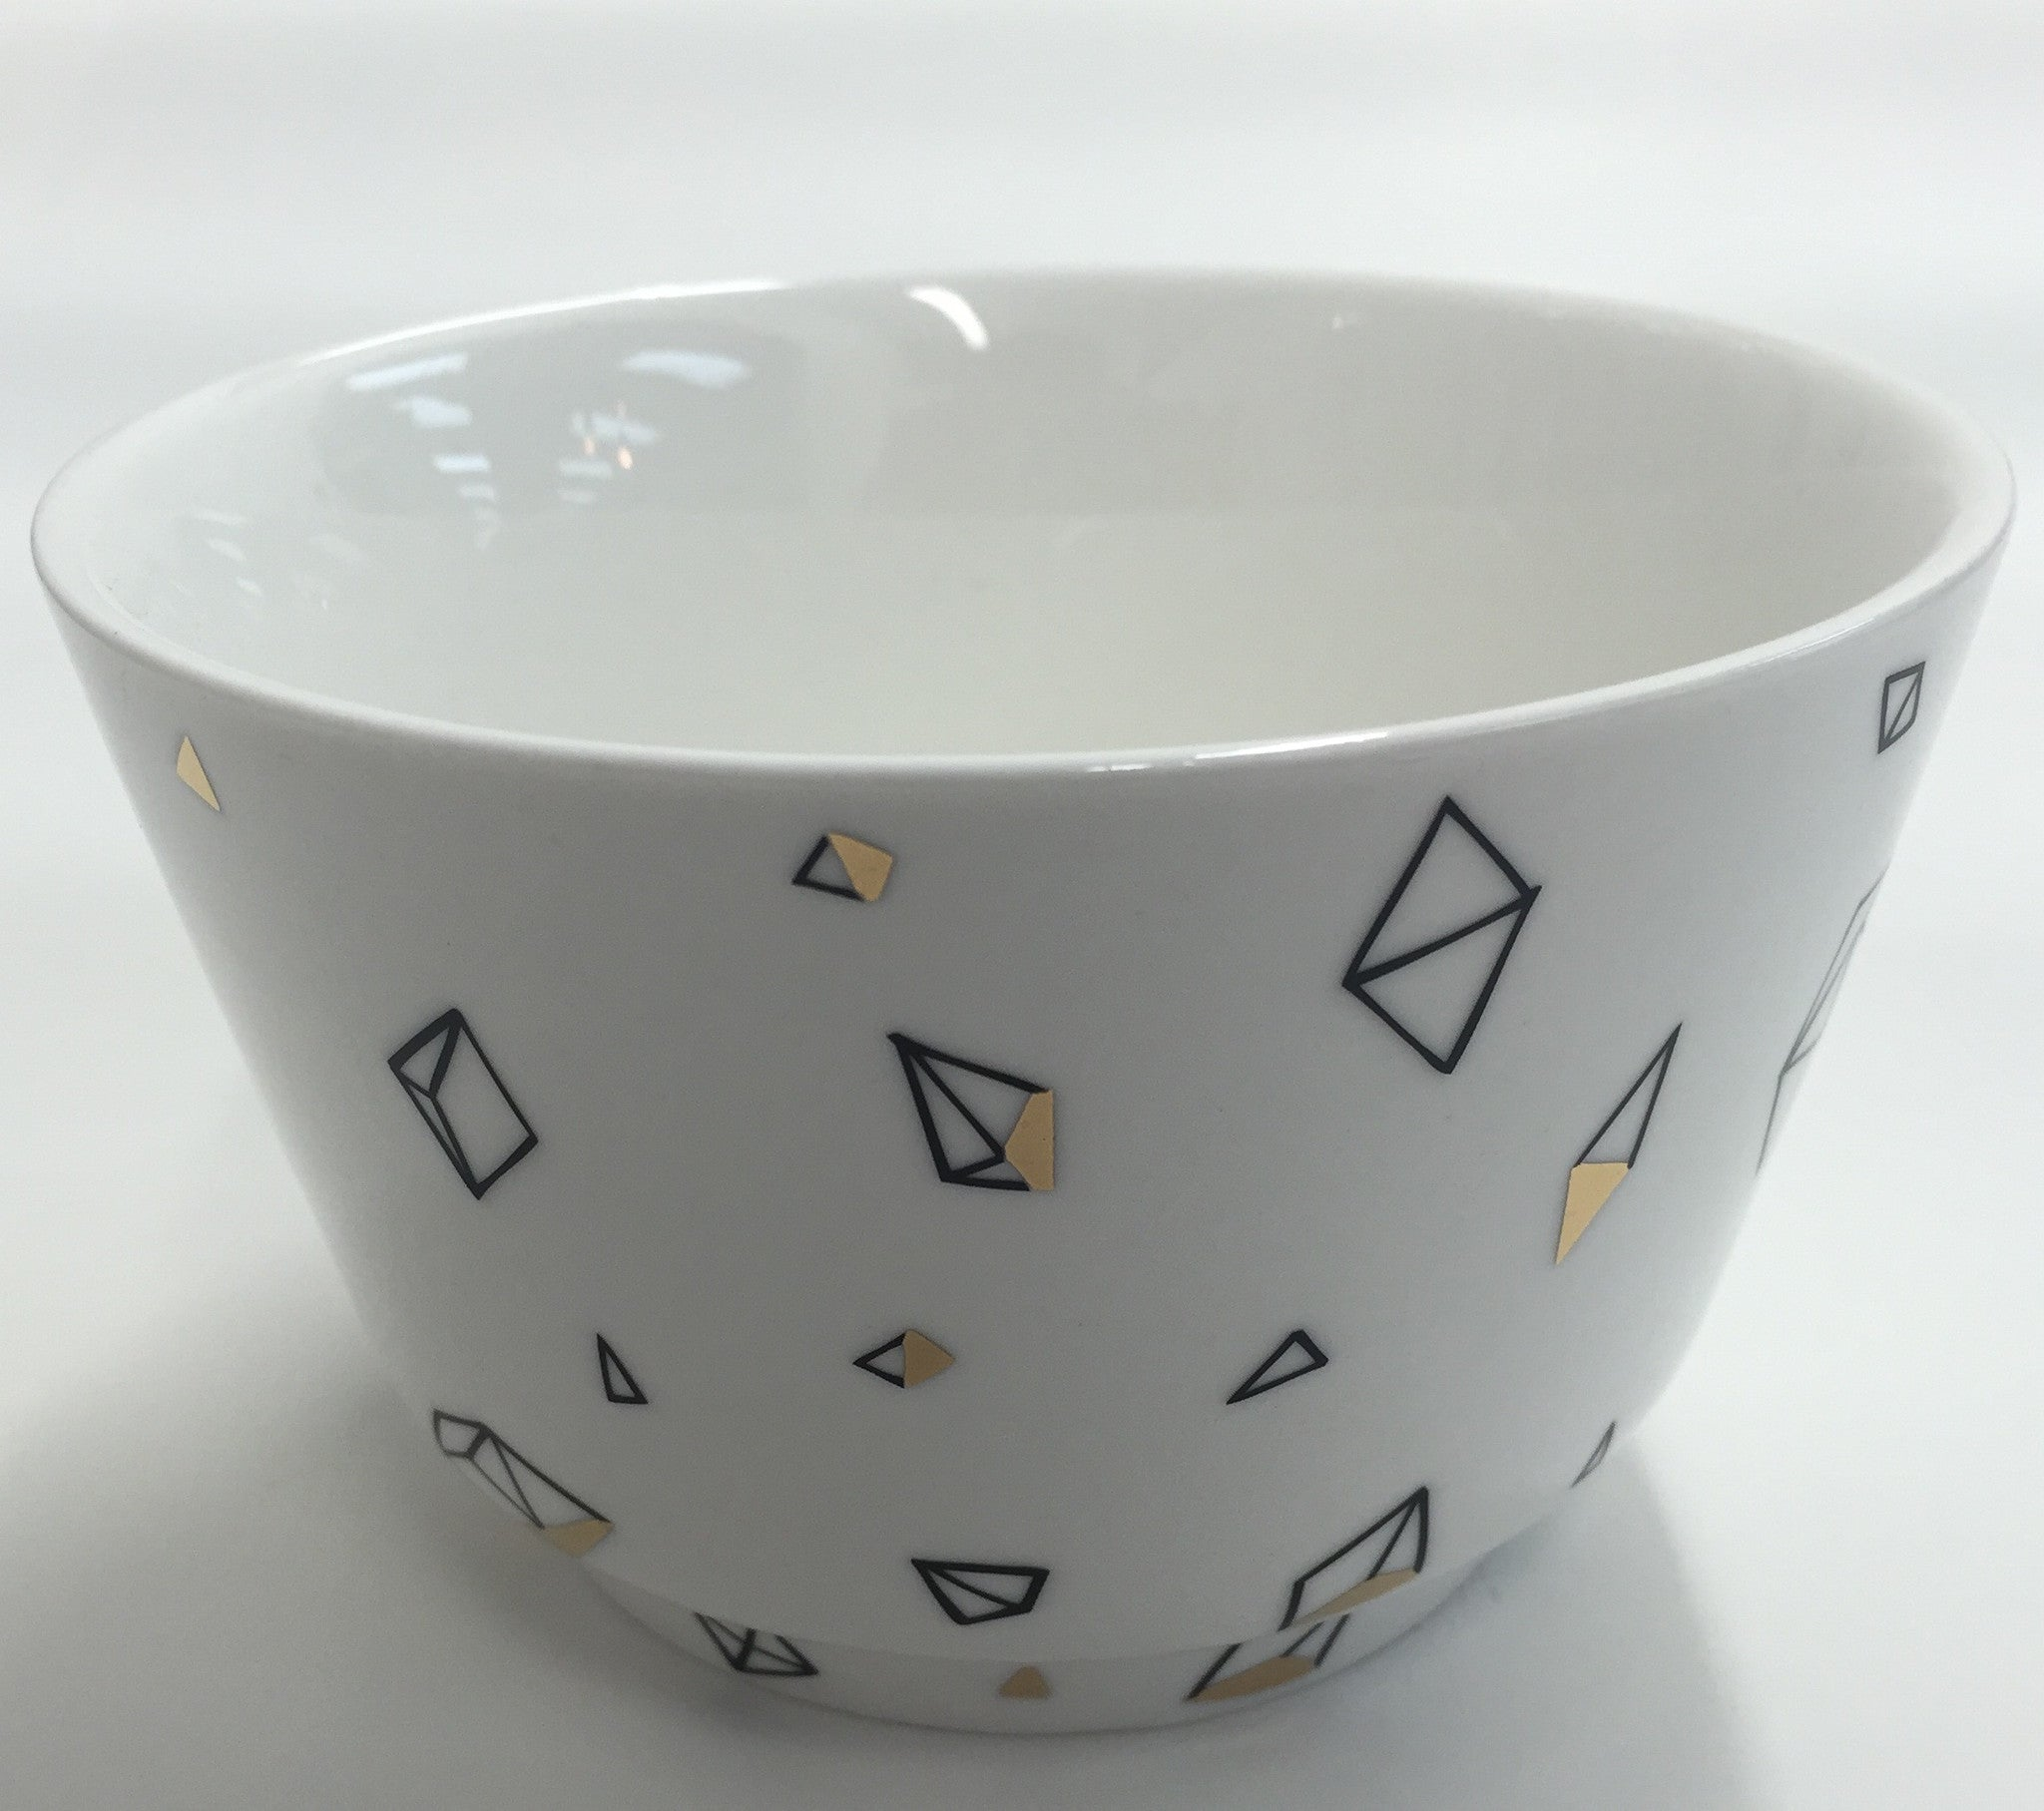 GEORGE & CO Geometric Bowl